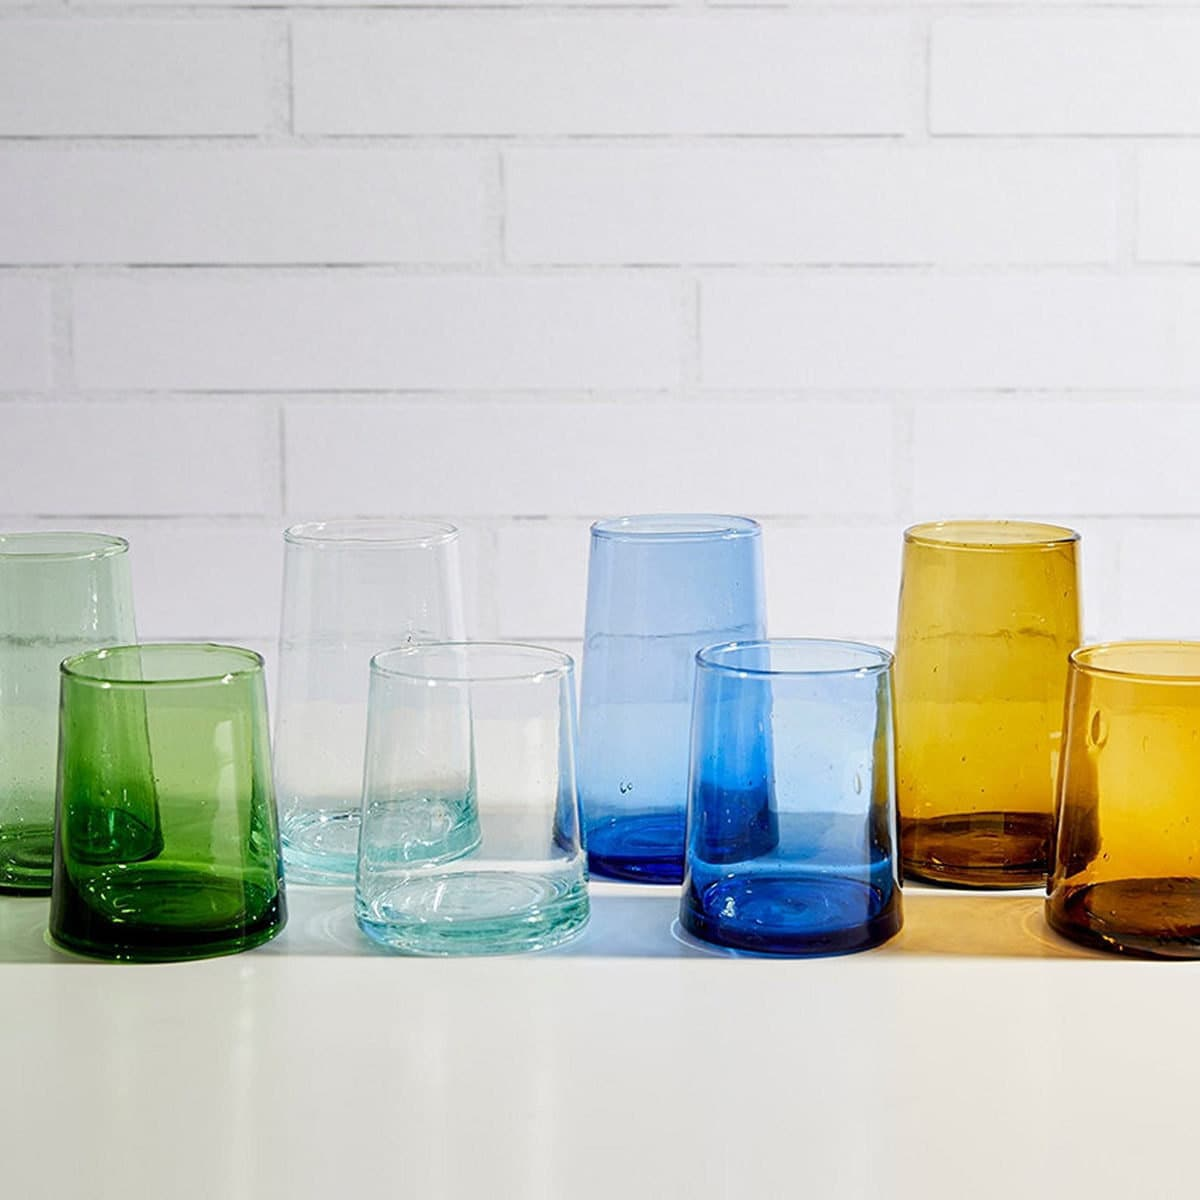 Eight glasses in green, clear, blue, and amber